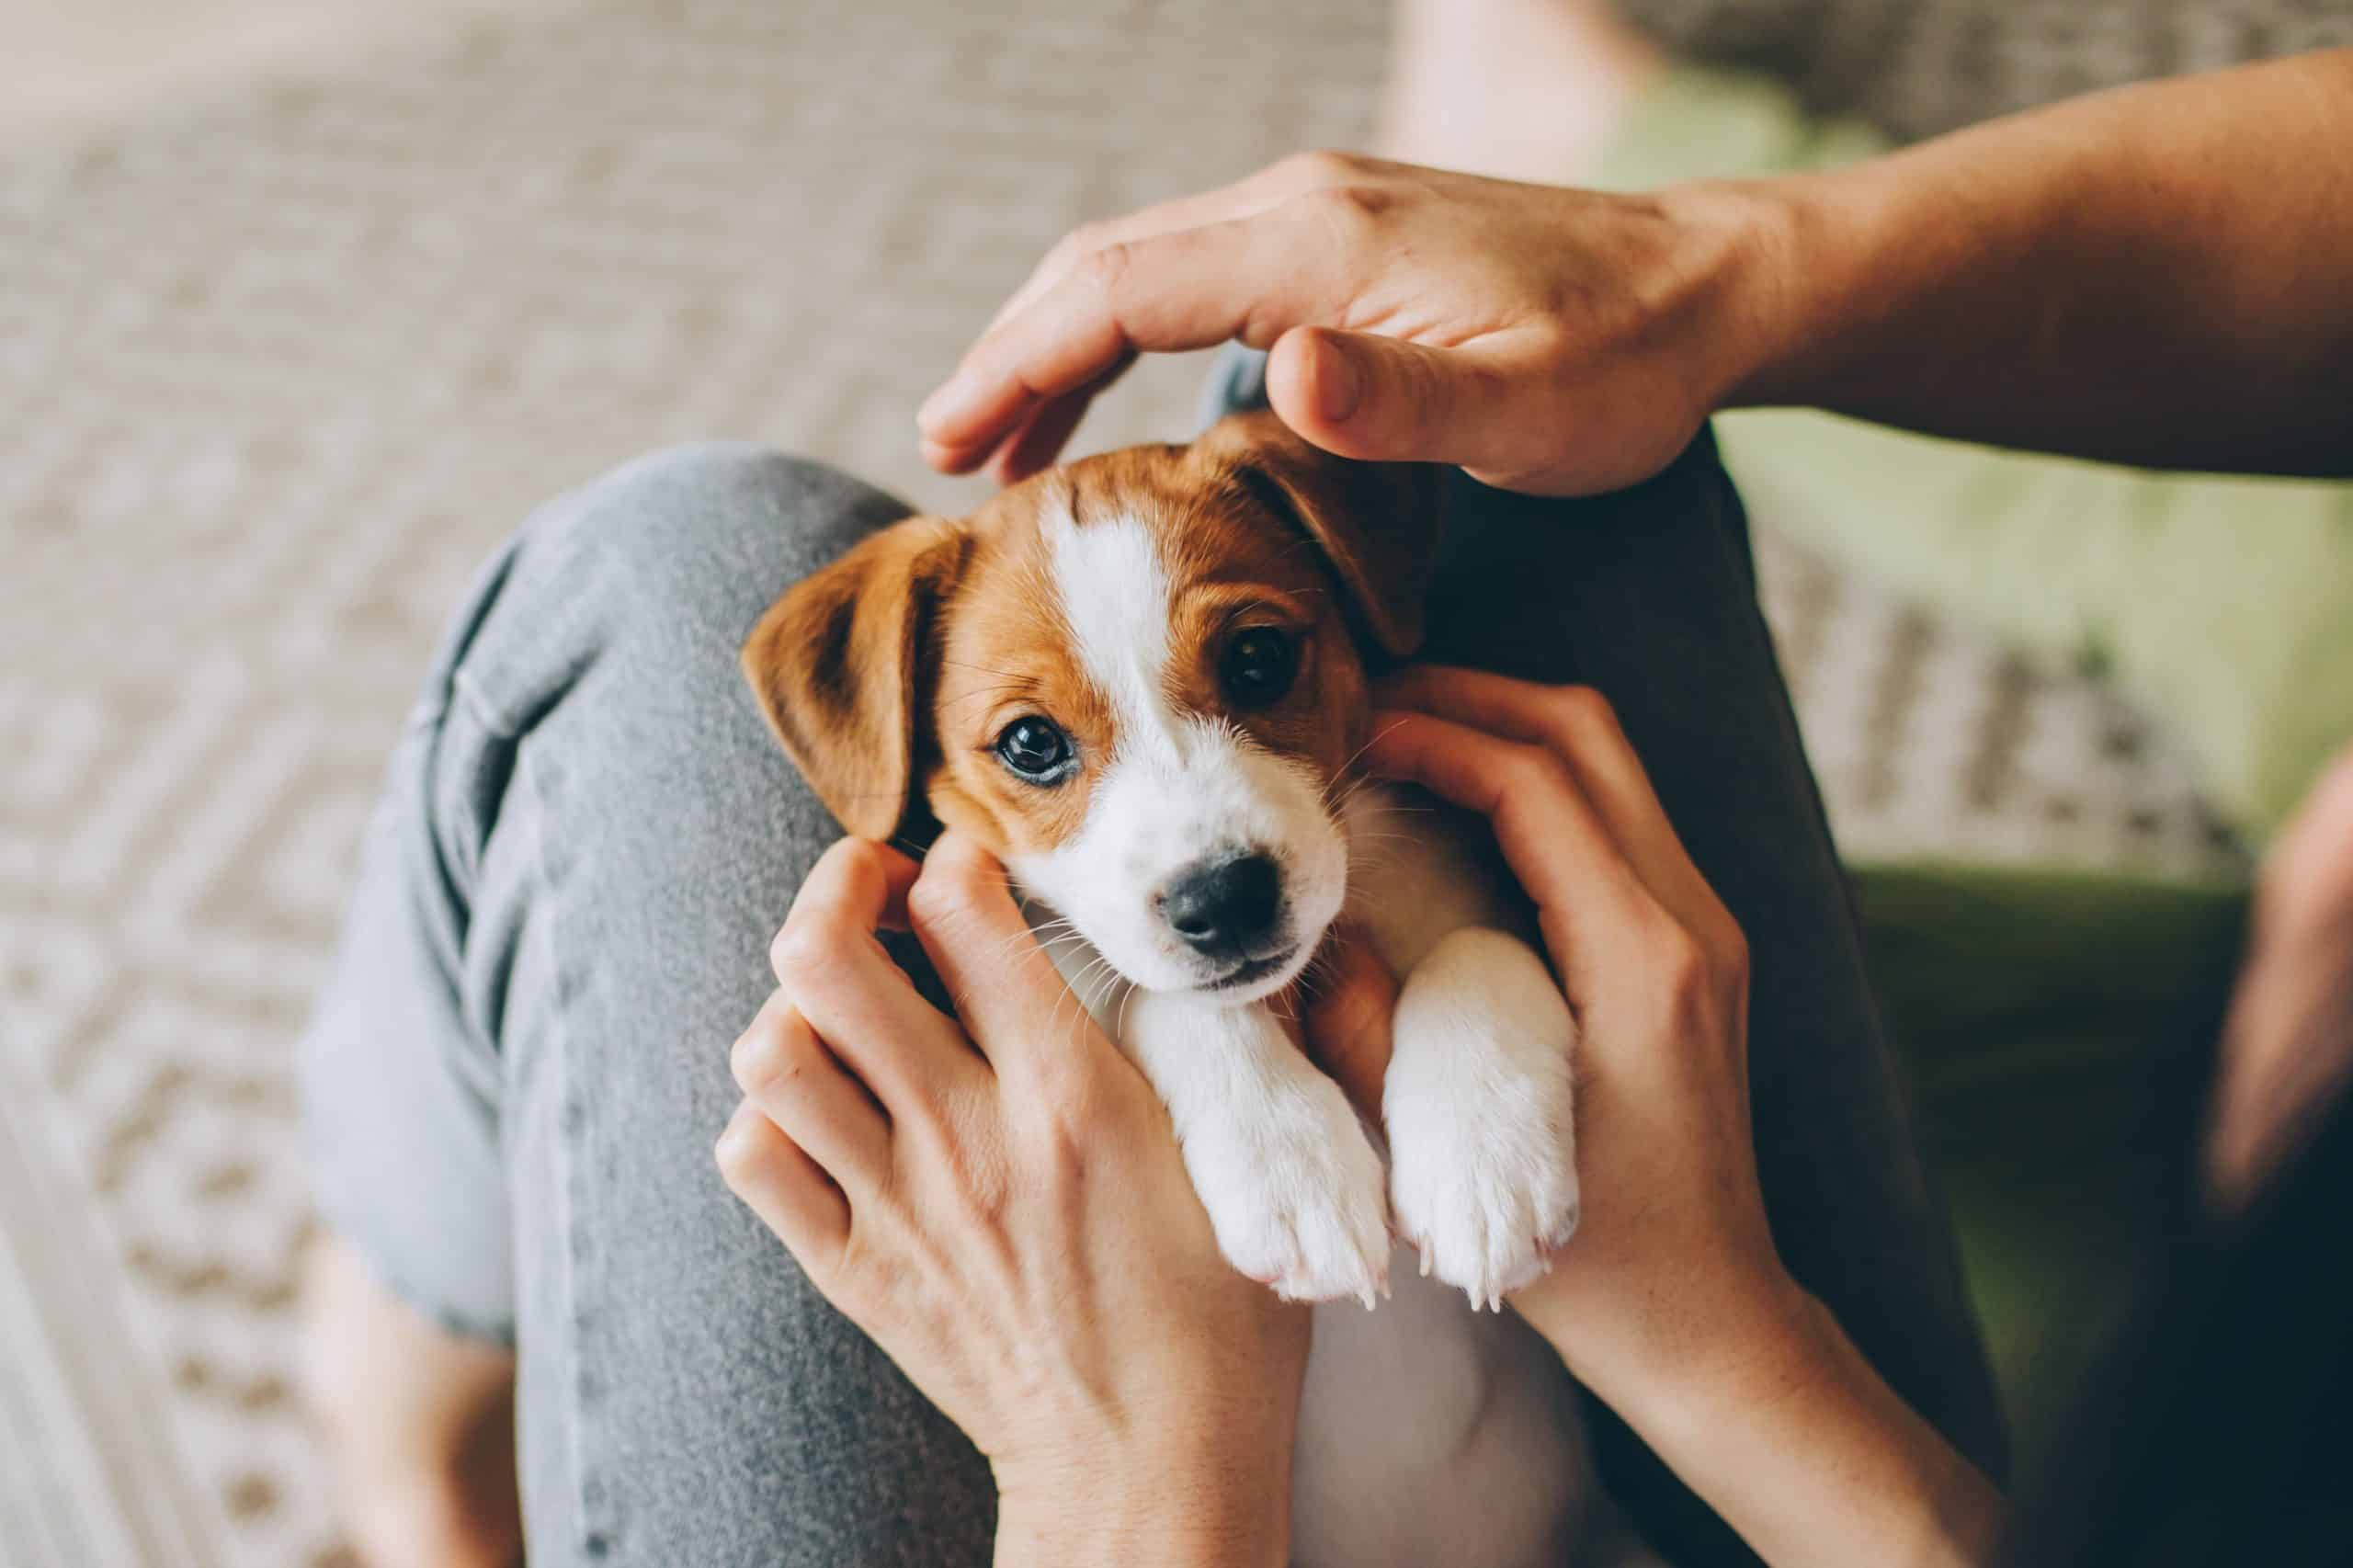 Owners cuddle with beagle puppy. It's not too early to teach your puppy. You should start training once the puppy is home.